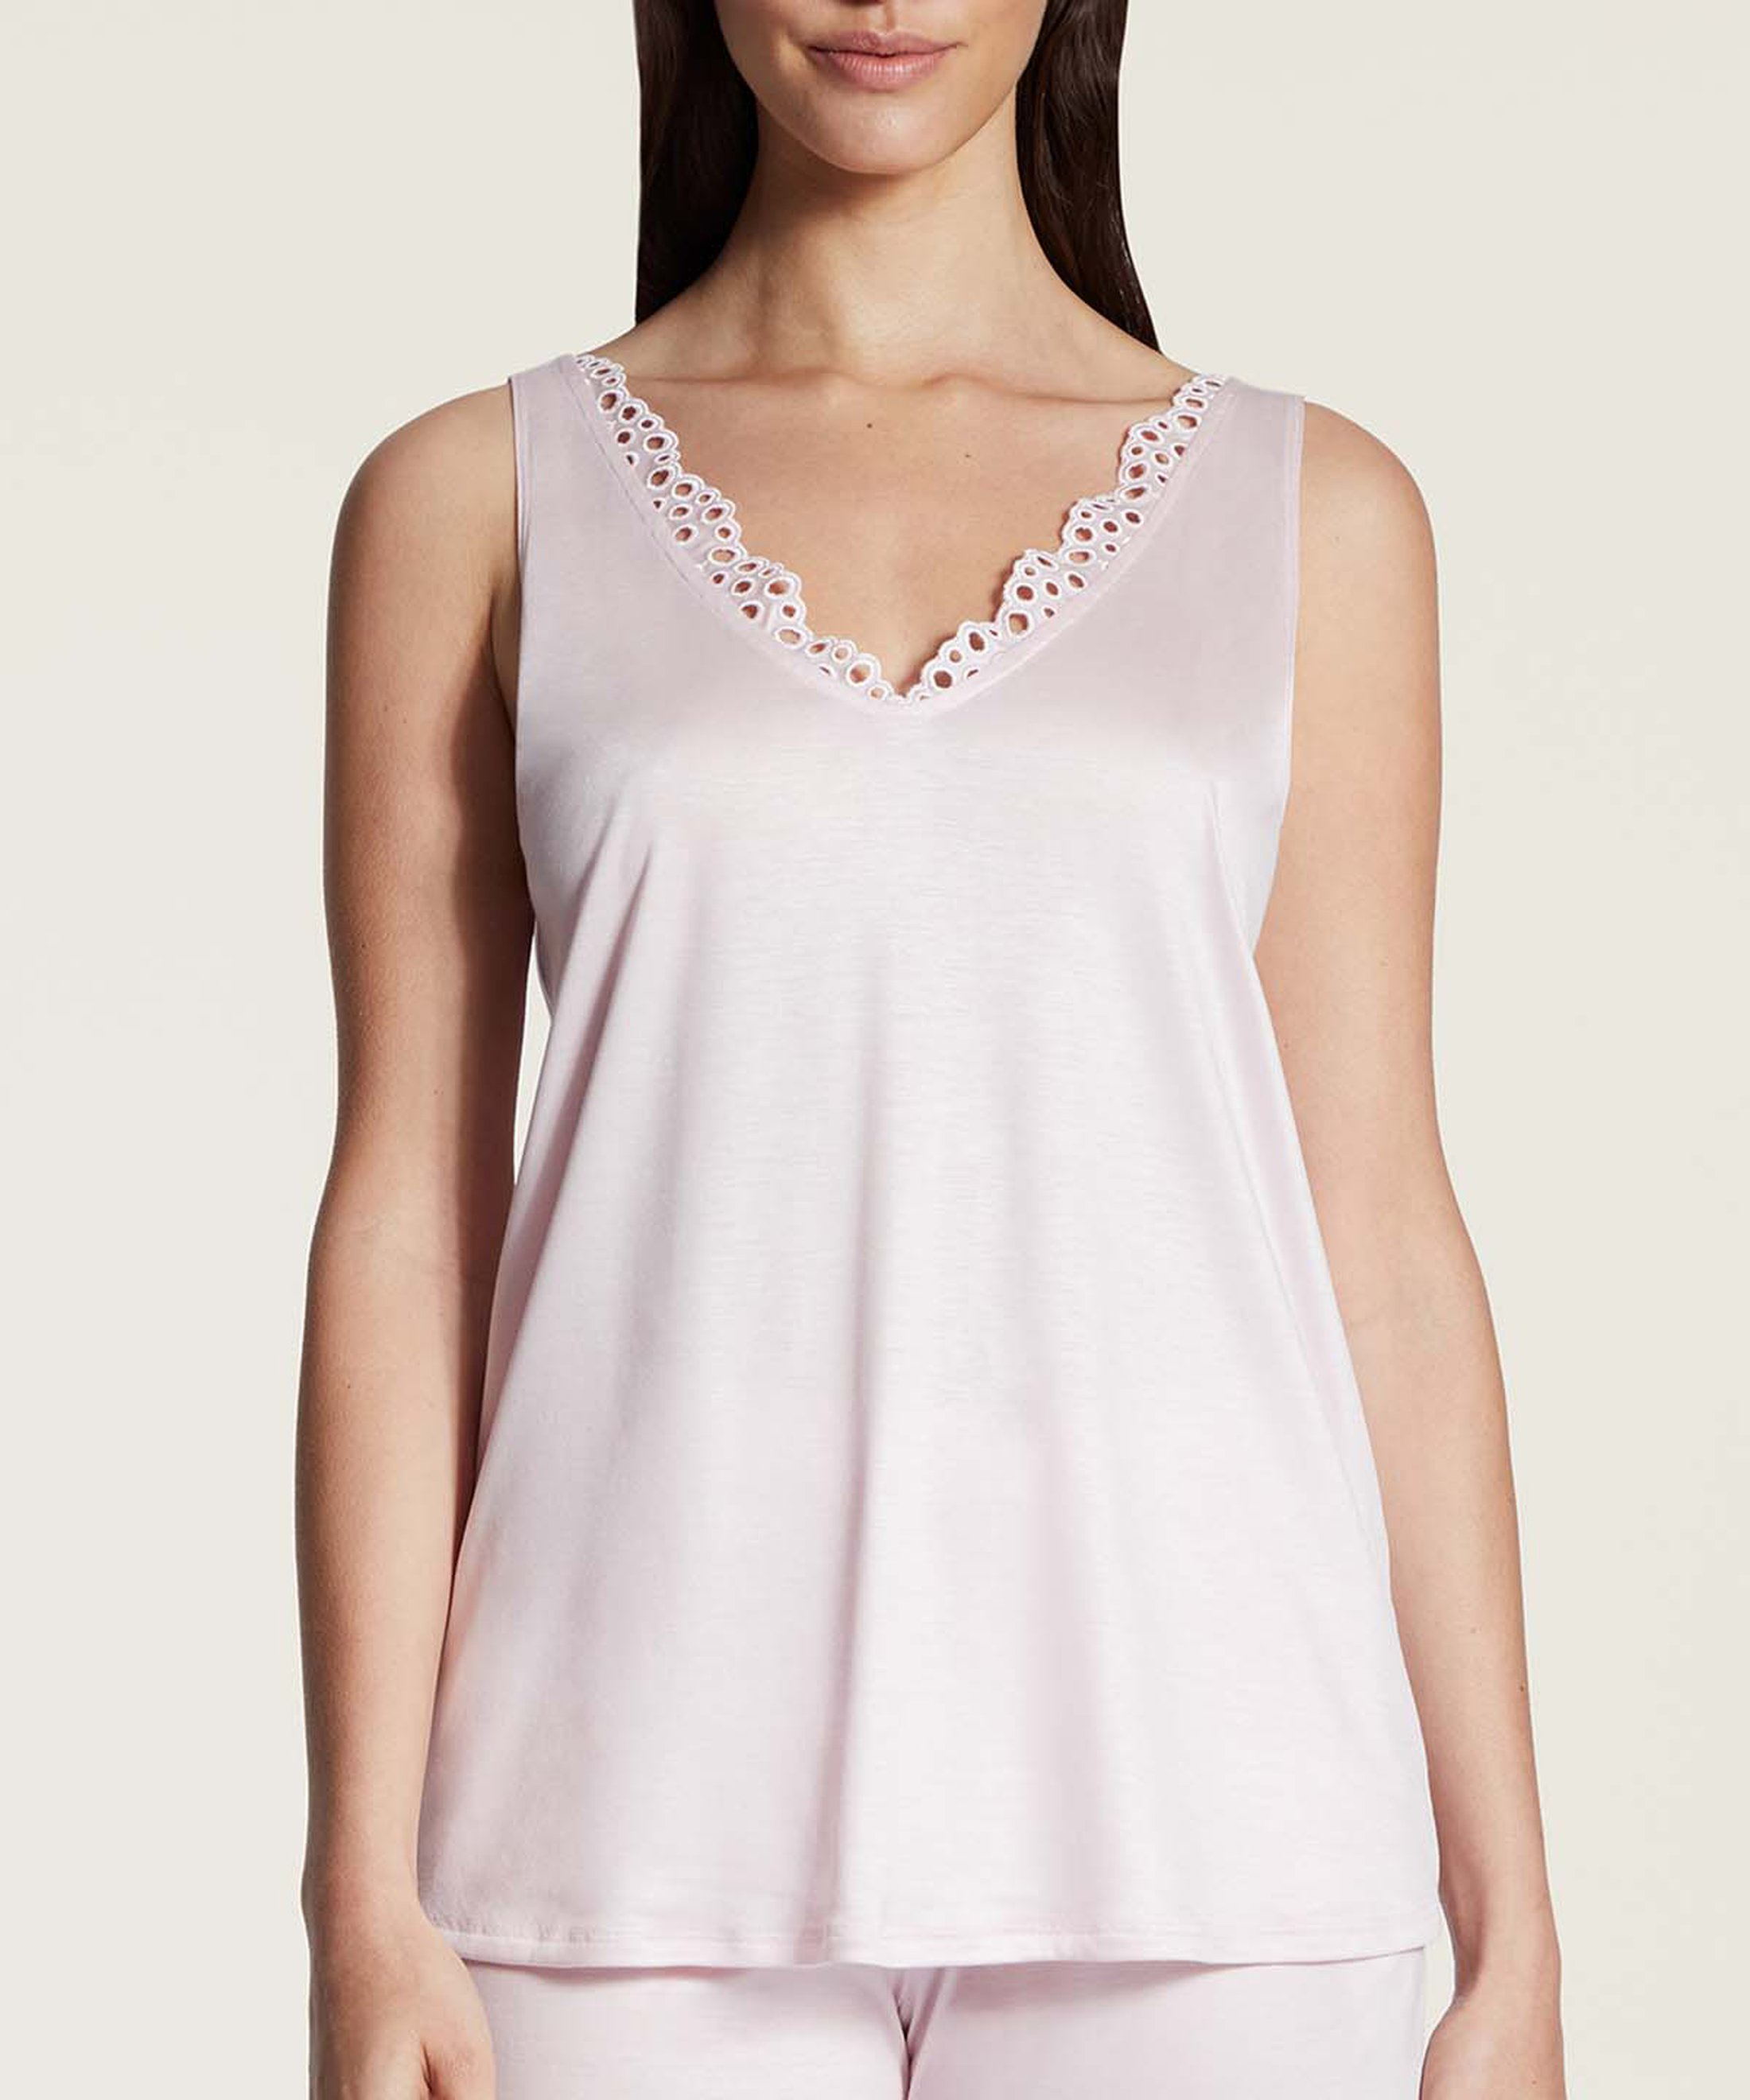 BULLE DE DOUCEUR Tencel Top Light Pink | Aubade